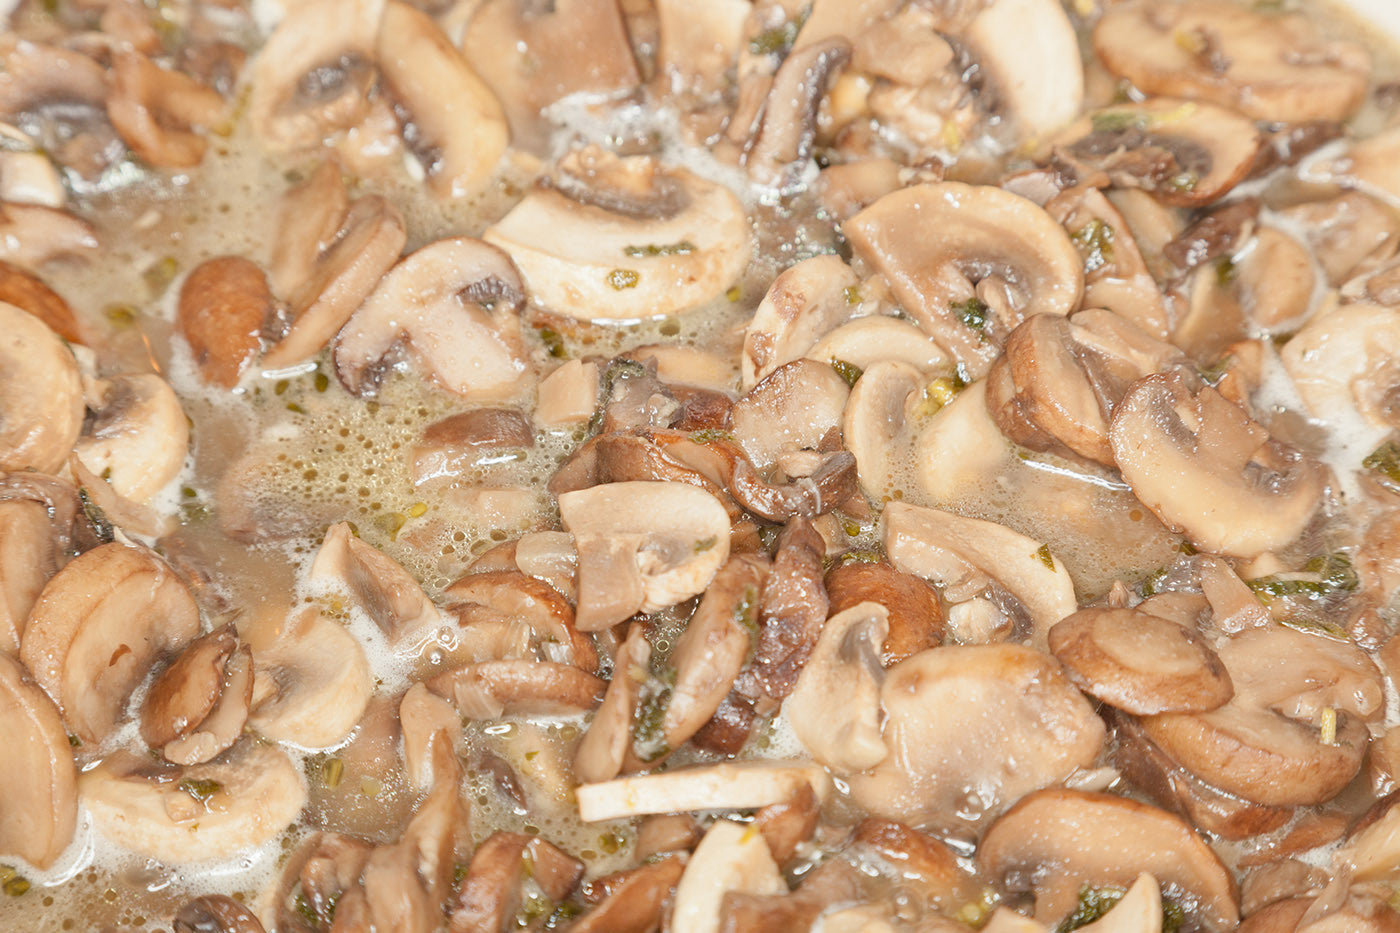 Make Your Own Nutrient Dense Mushroom Broth with VitaClay!